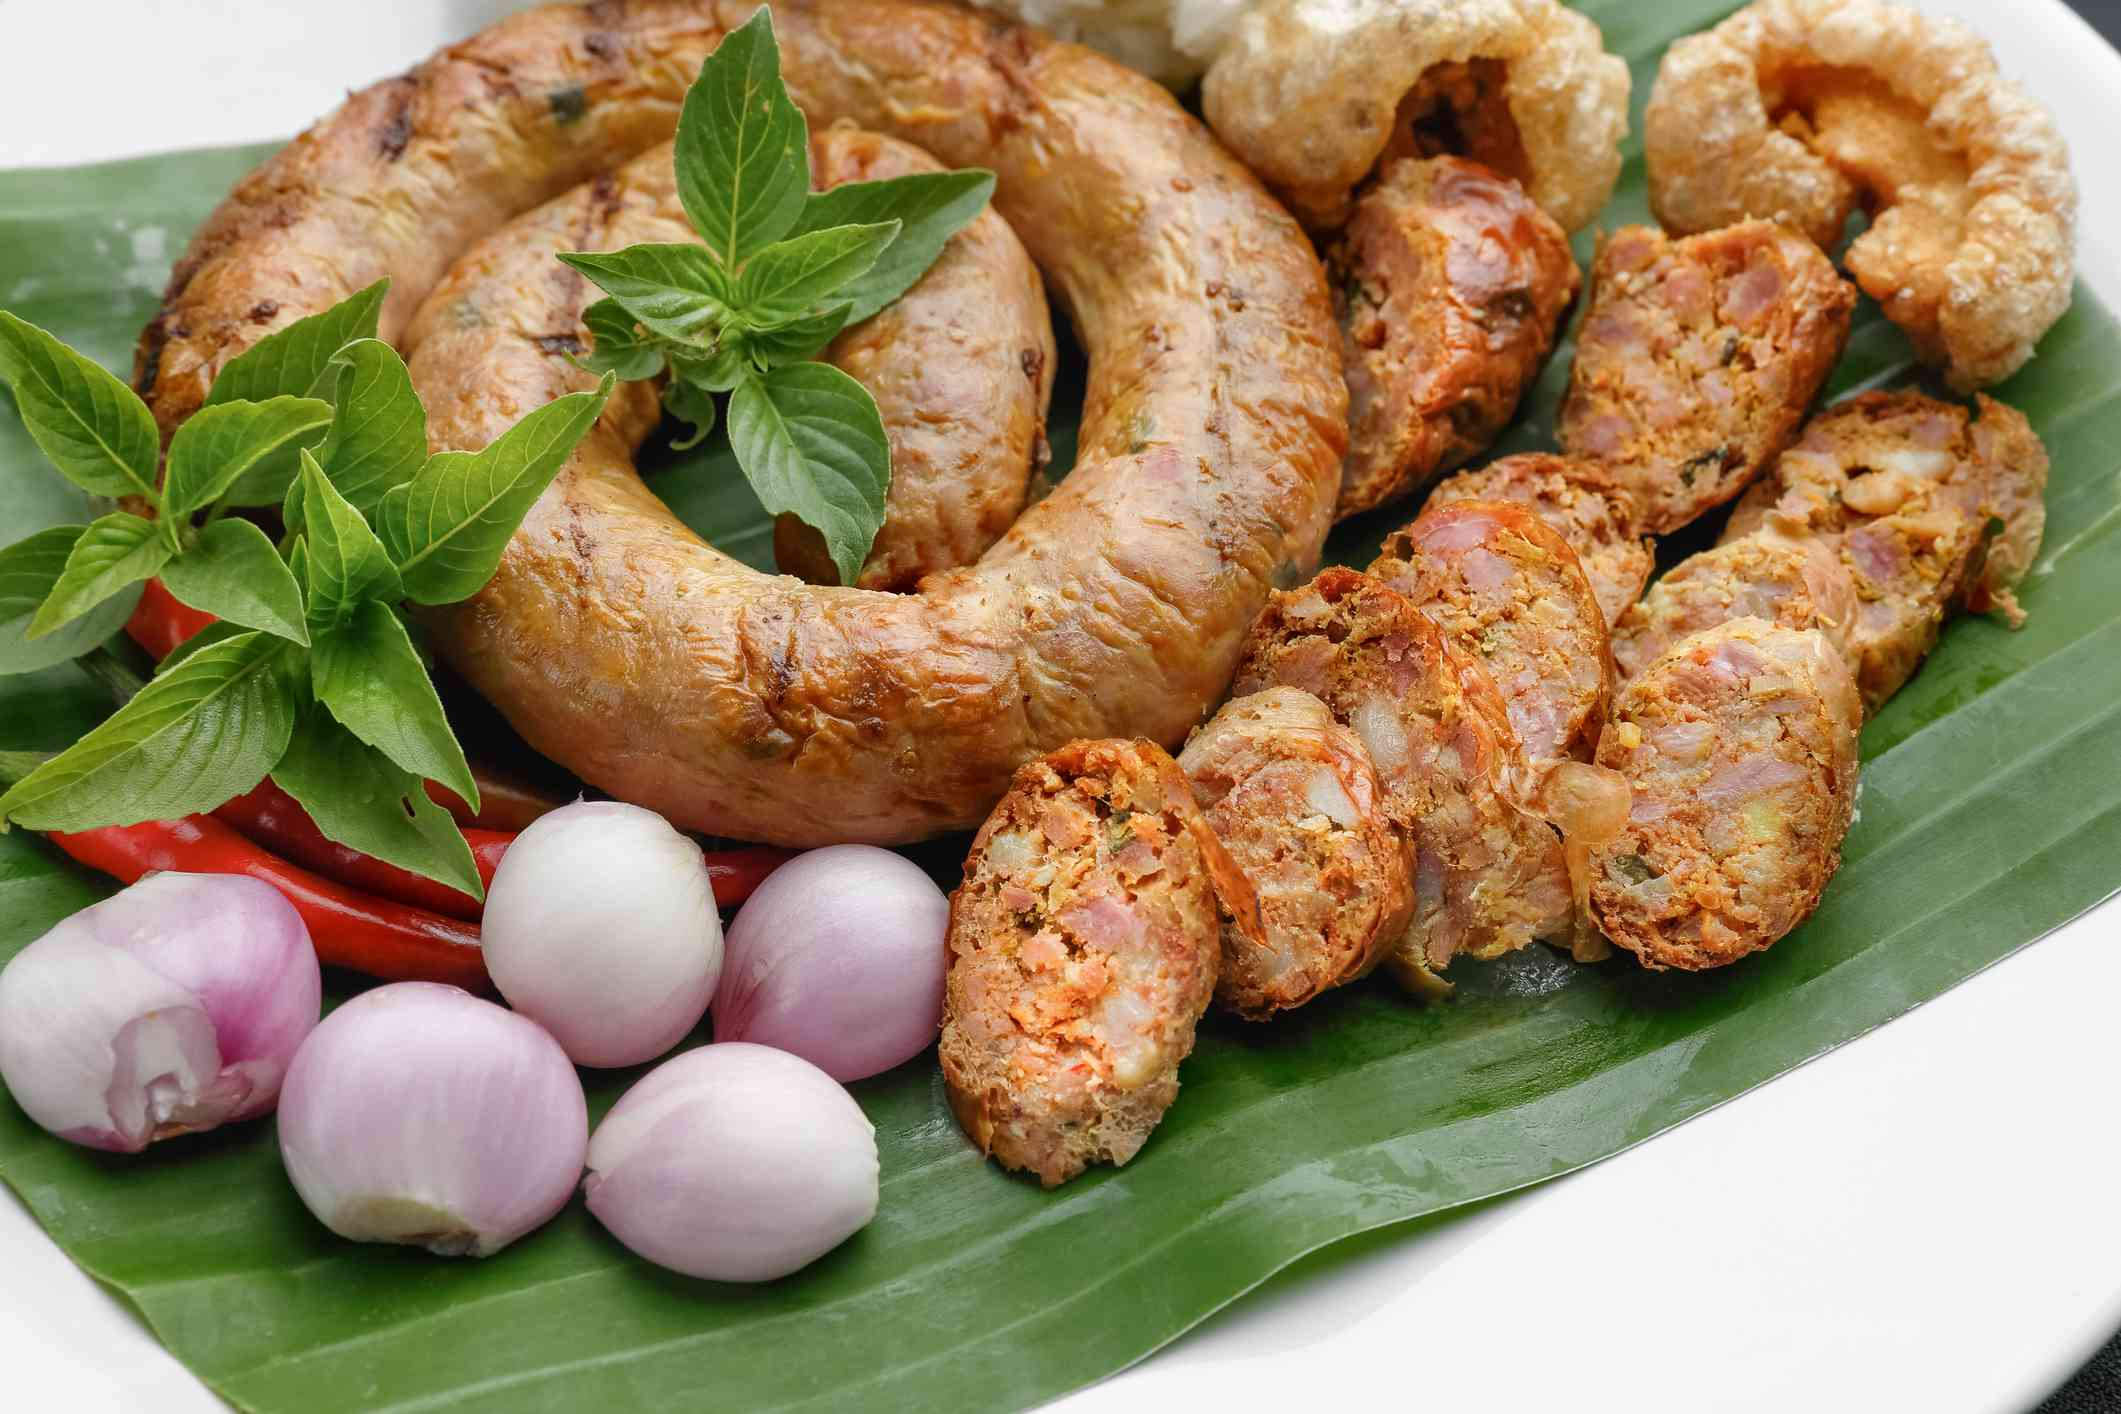 sausage link and slices of sausage on a banana leaf with small onions, chillies, and a green herb